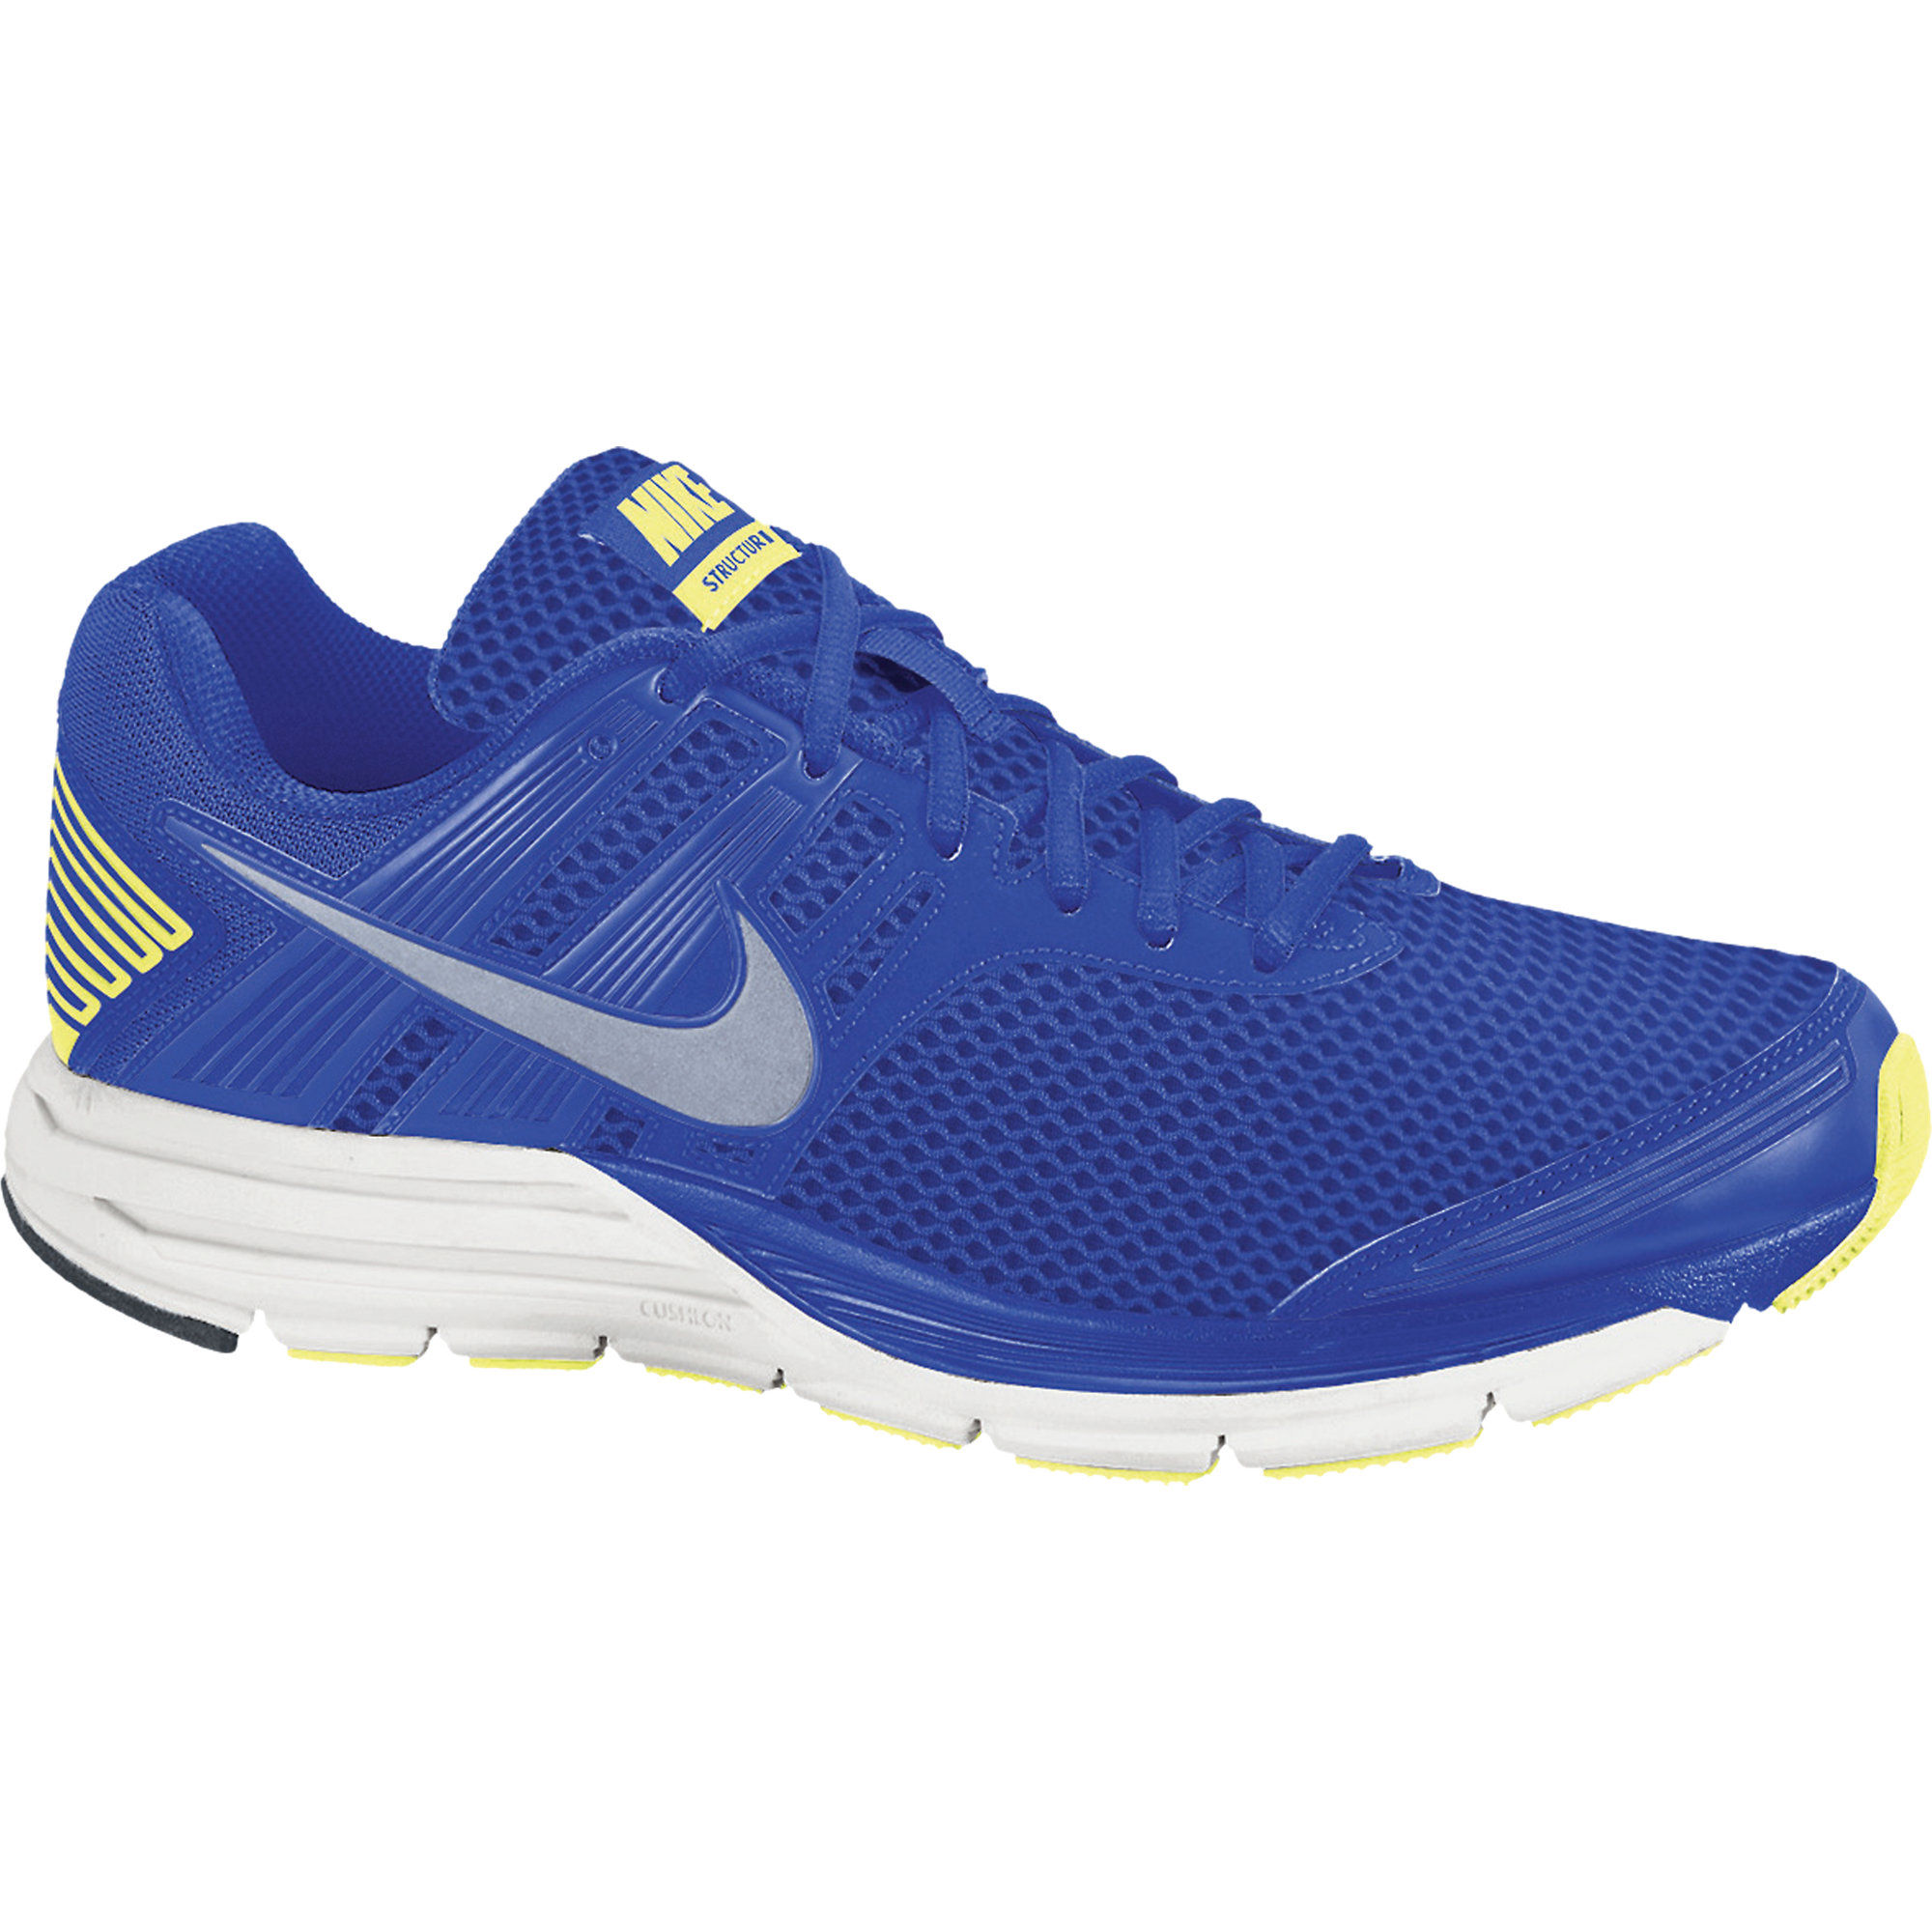 Top Rated Stability Plus Running Shoes